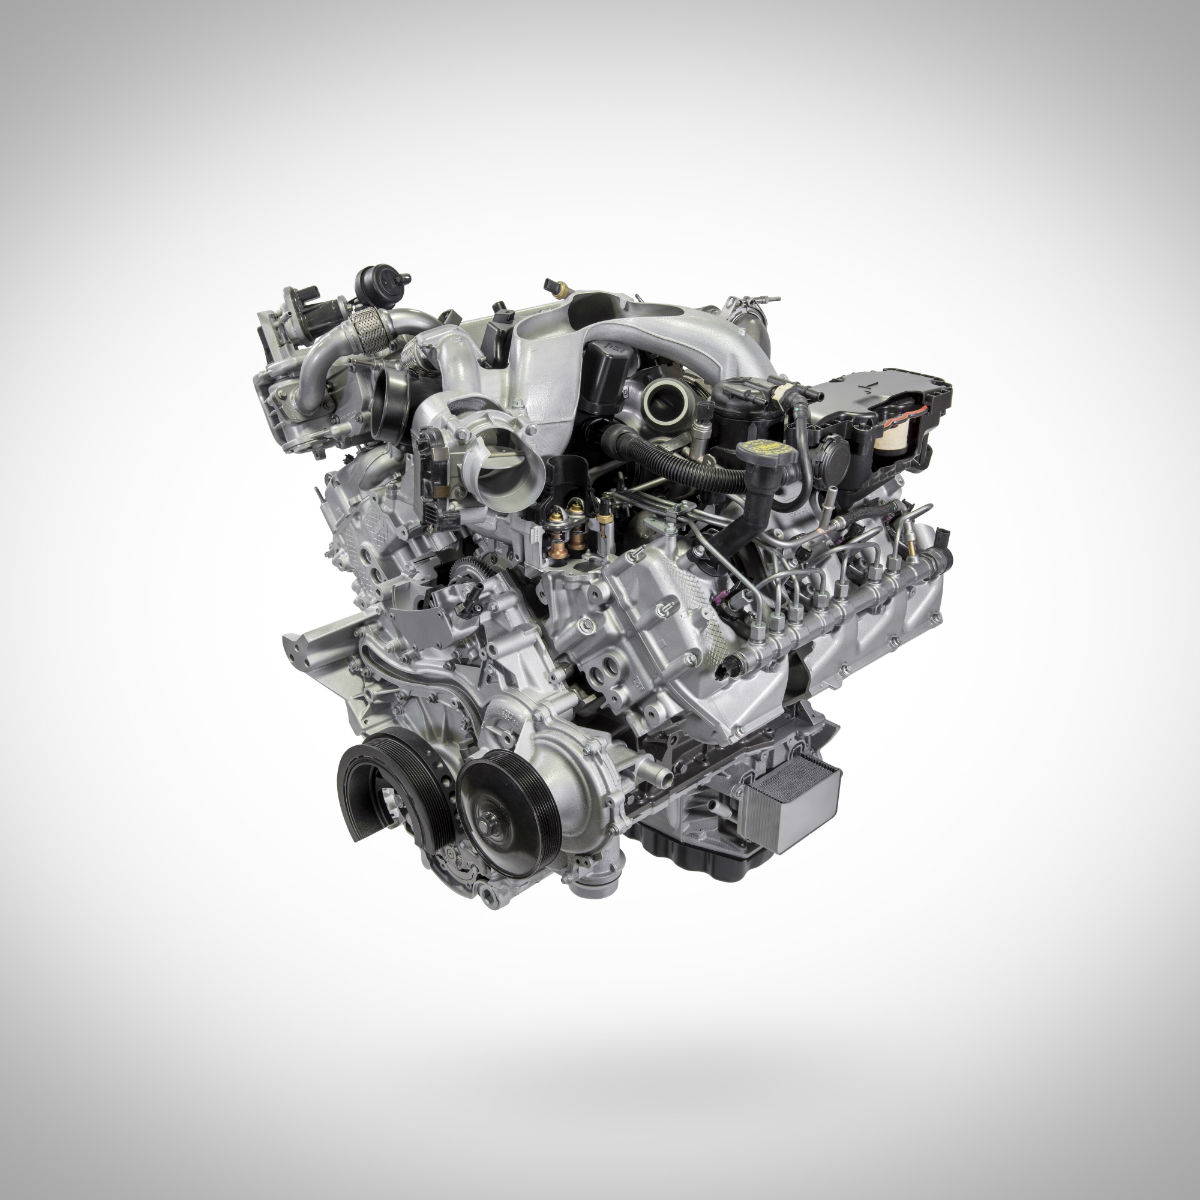 Diesel engine in a 2020 Ford Super Duty